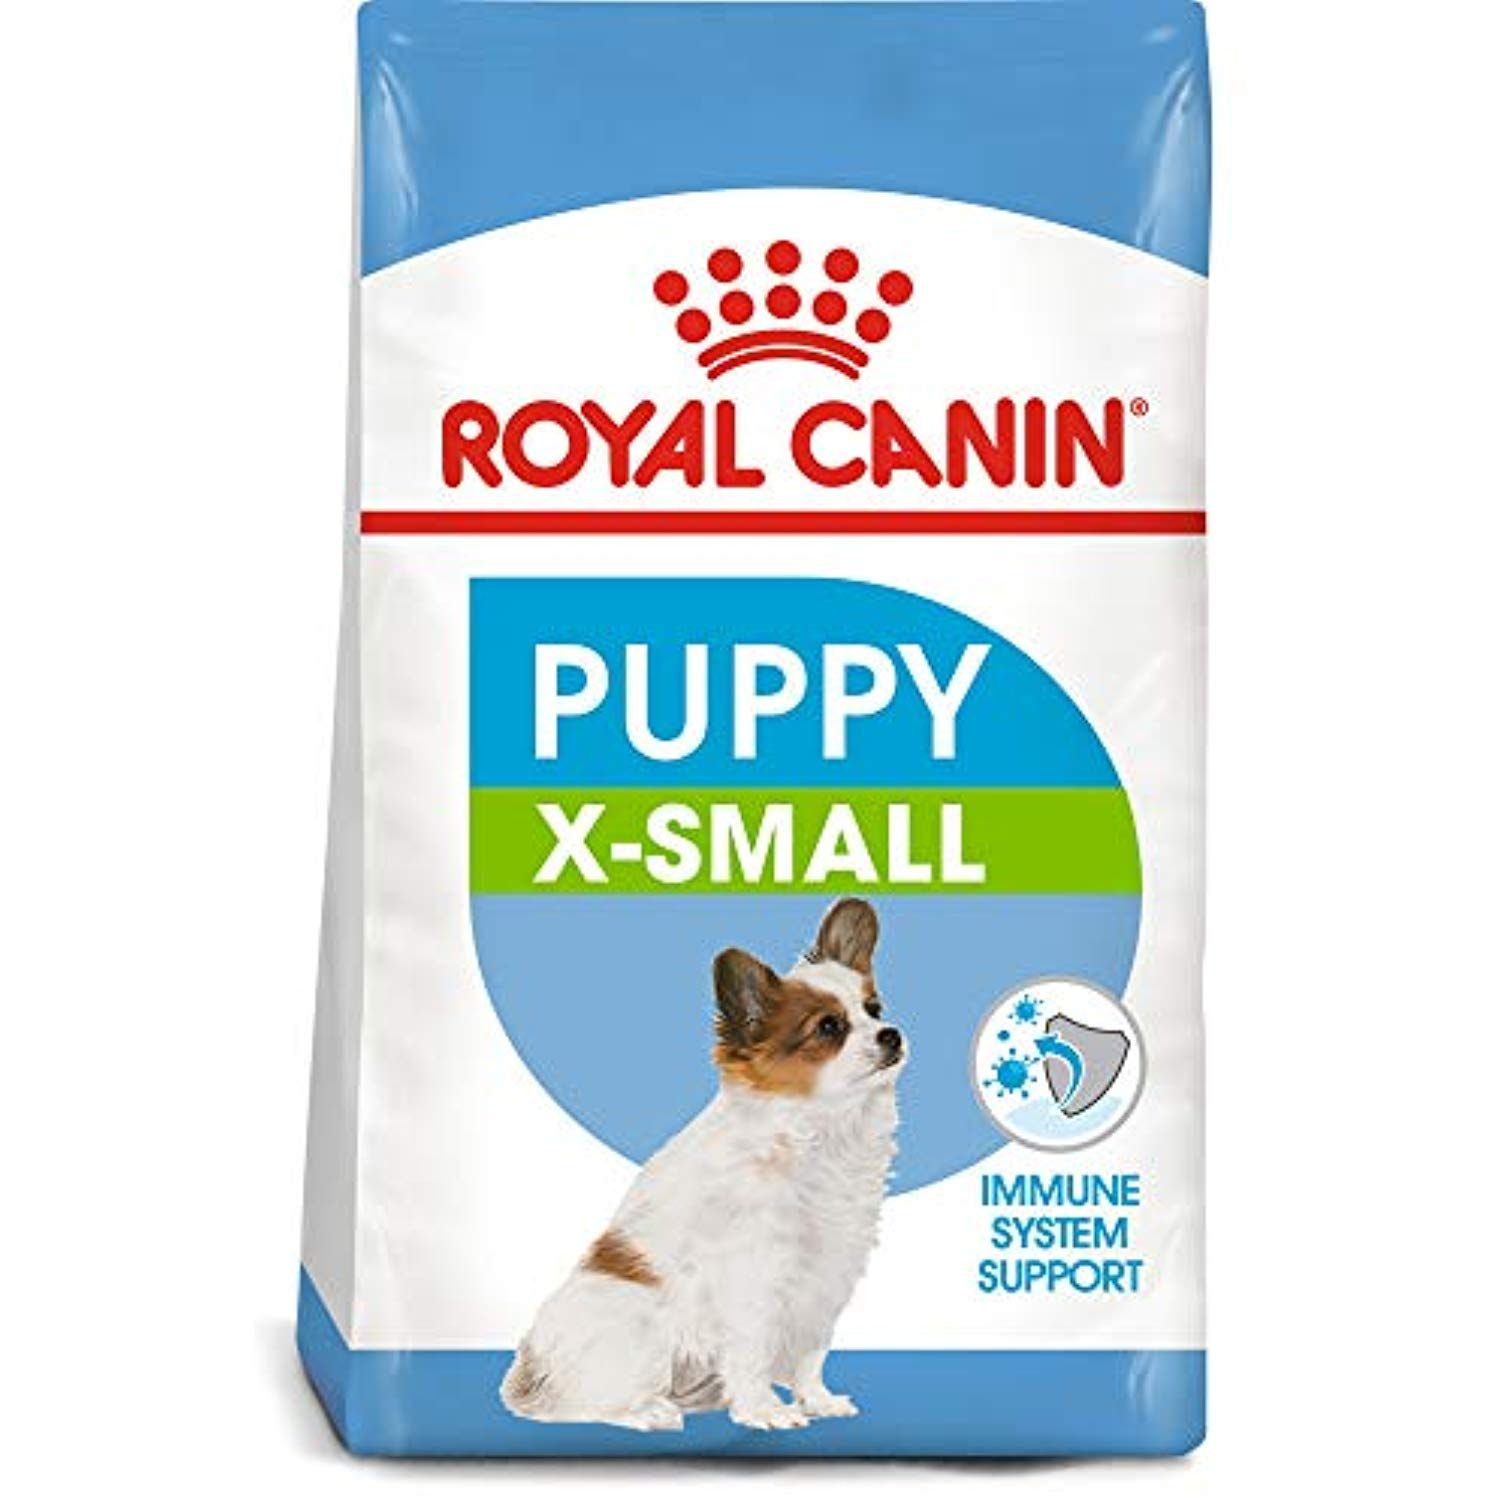 Royal Canin X Small Puppy Dry Dog Food 15 Lb To View Further